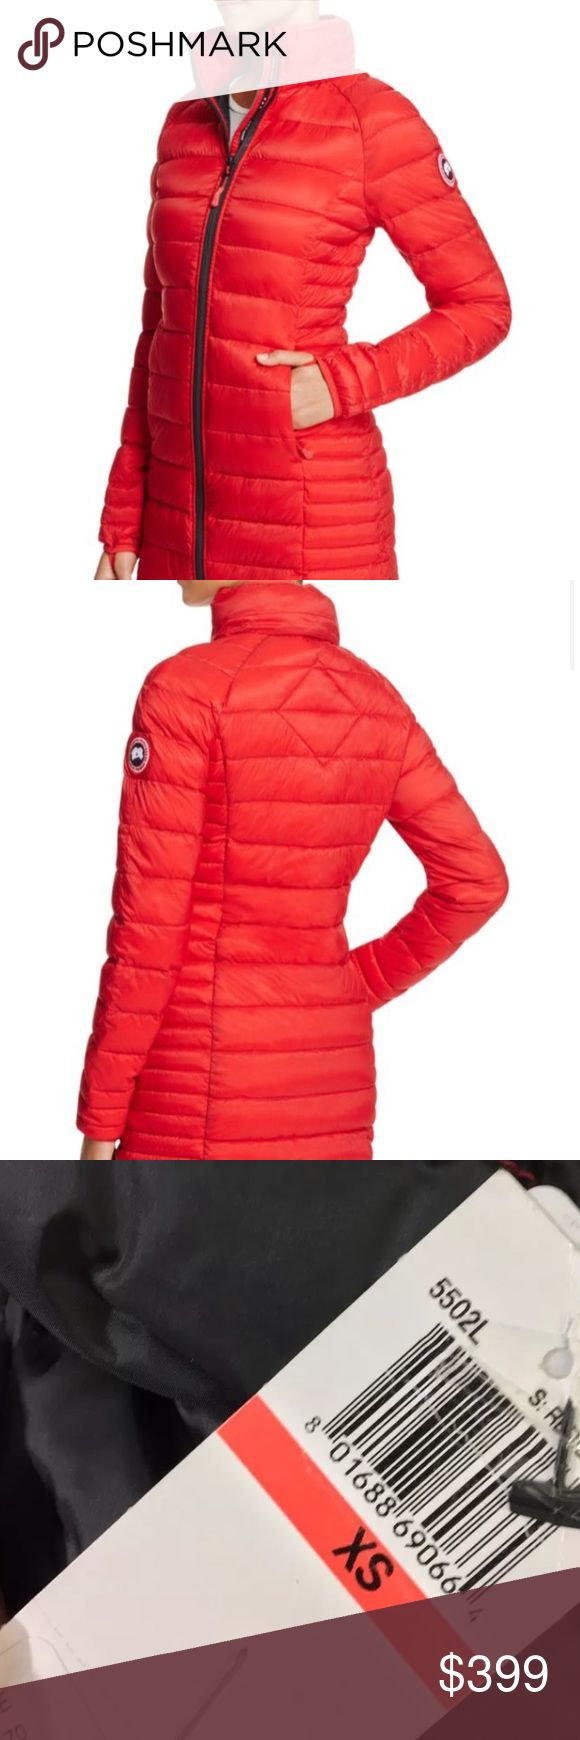 Canada Goose Brookvale Parka Authentic light weight packable coat, true to size. Tag attached (pictures). Worn once or twice- practically new. Please inspect carefully- no trades. Canada Goose Jackets & Coats Puffers